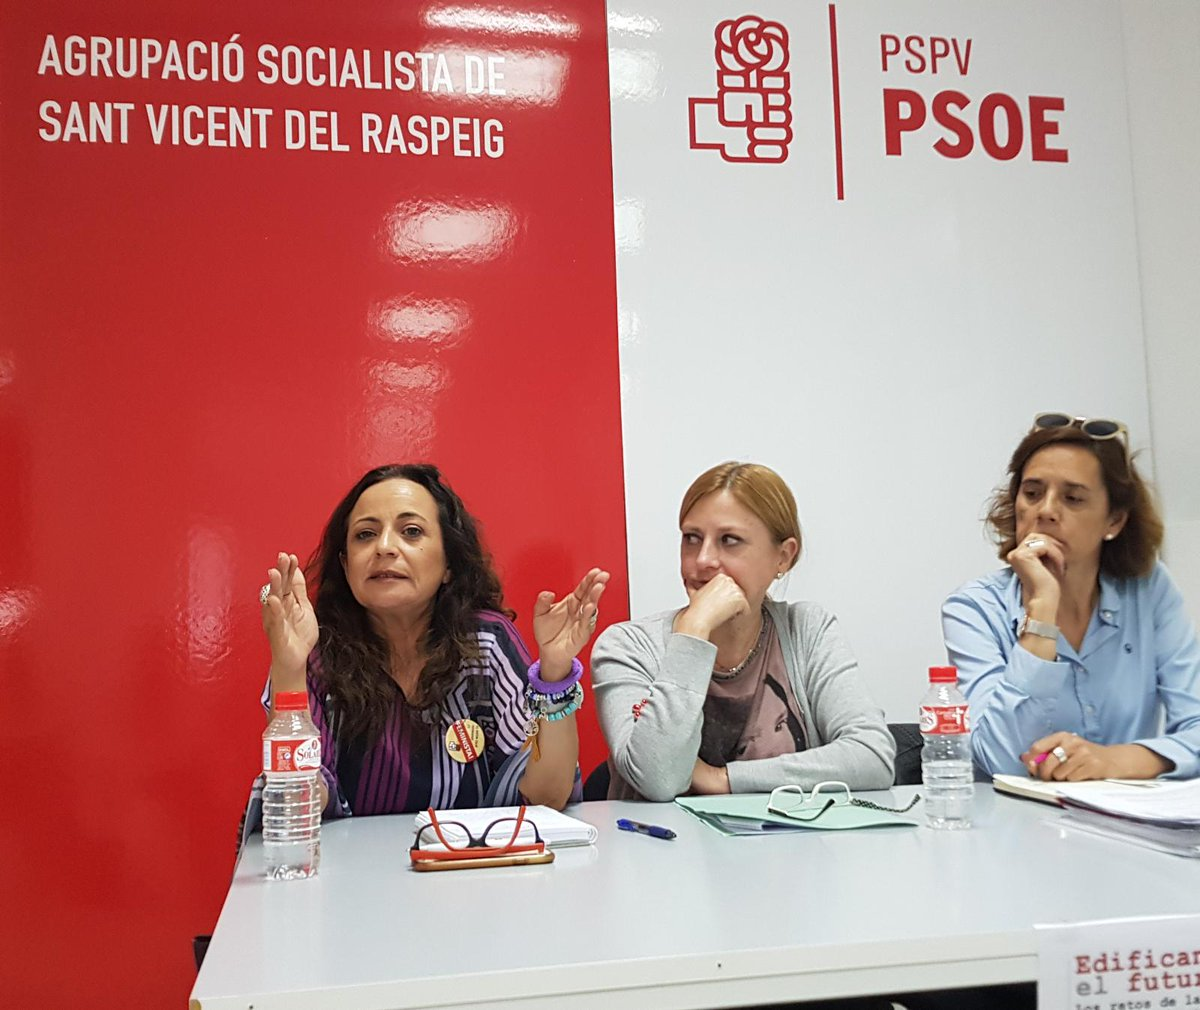 PSOE S.Vte Raspeig's photo on Vicente